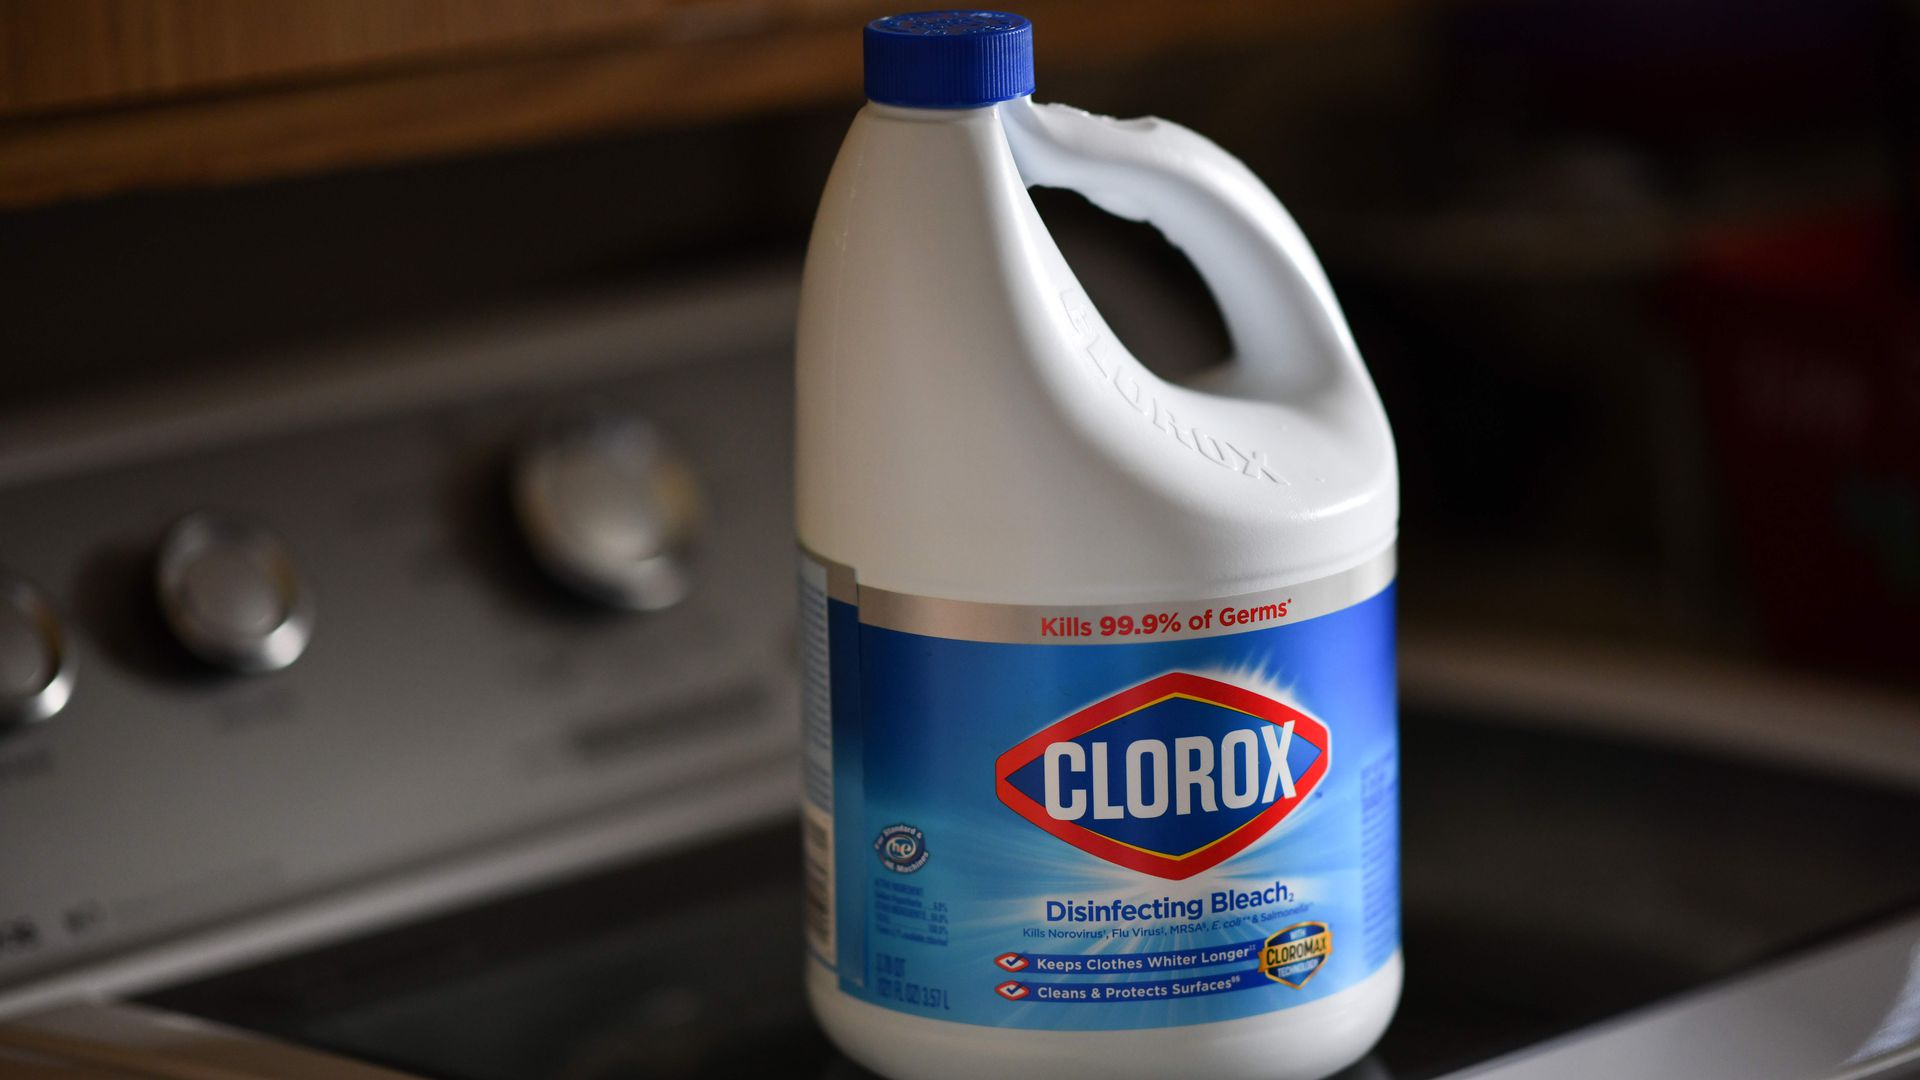 Image of Clorox bleach